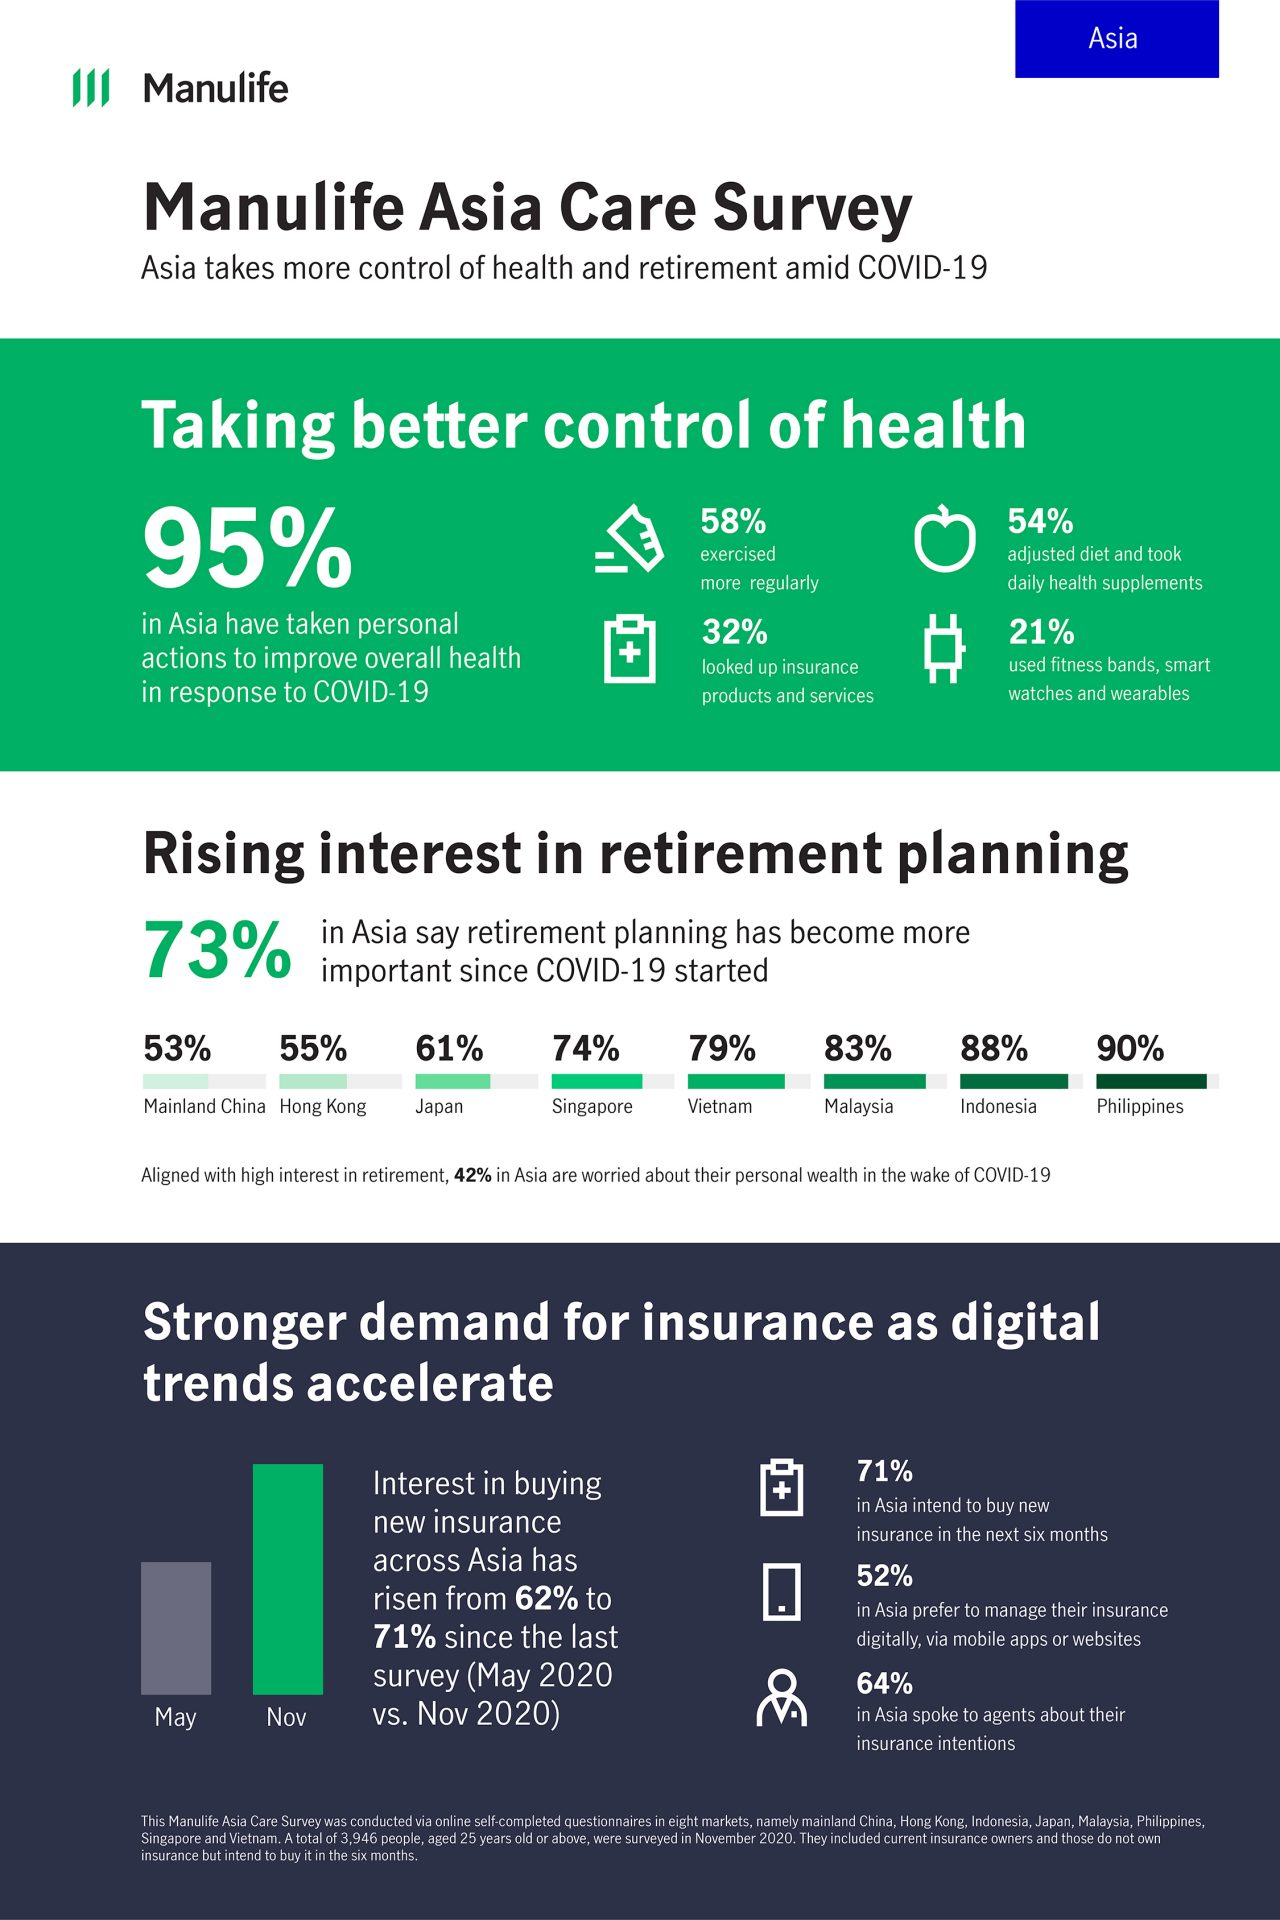 Inforgraphic illustrating that 95% in Asia have taken persoanl actions to improve overall health in response to COVID-19 and 75% in Asia say retirement planning has become more important since COVID-19